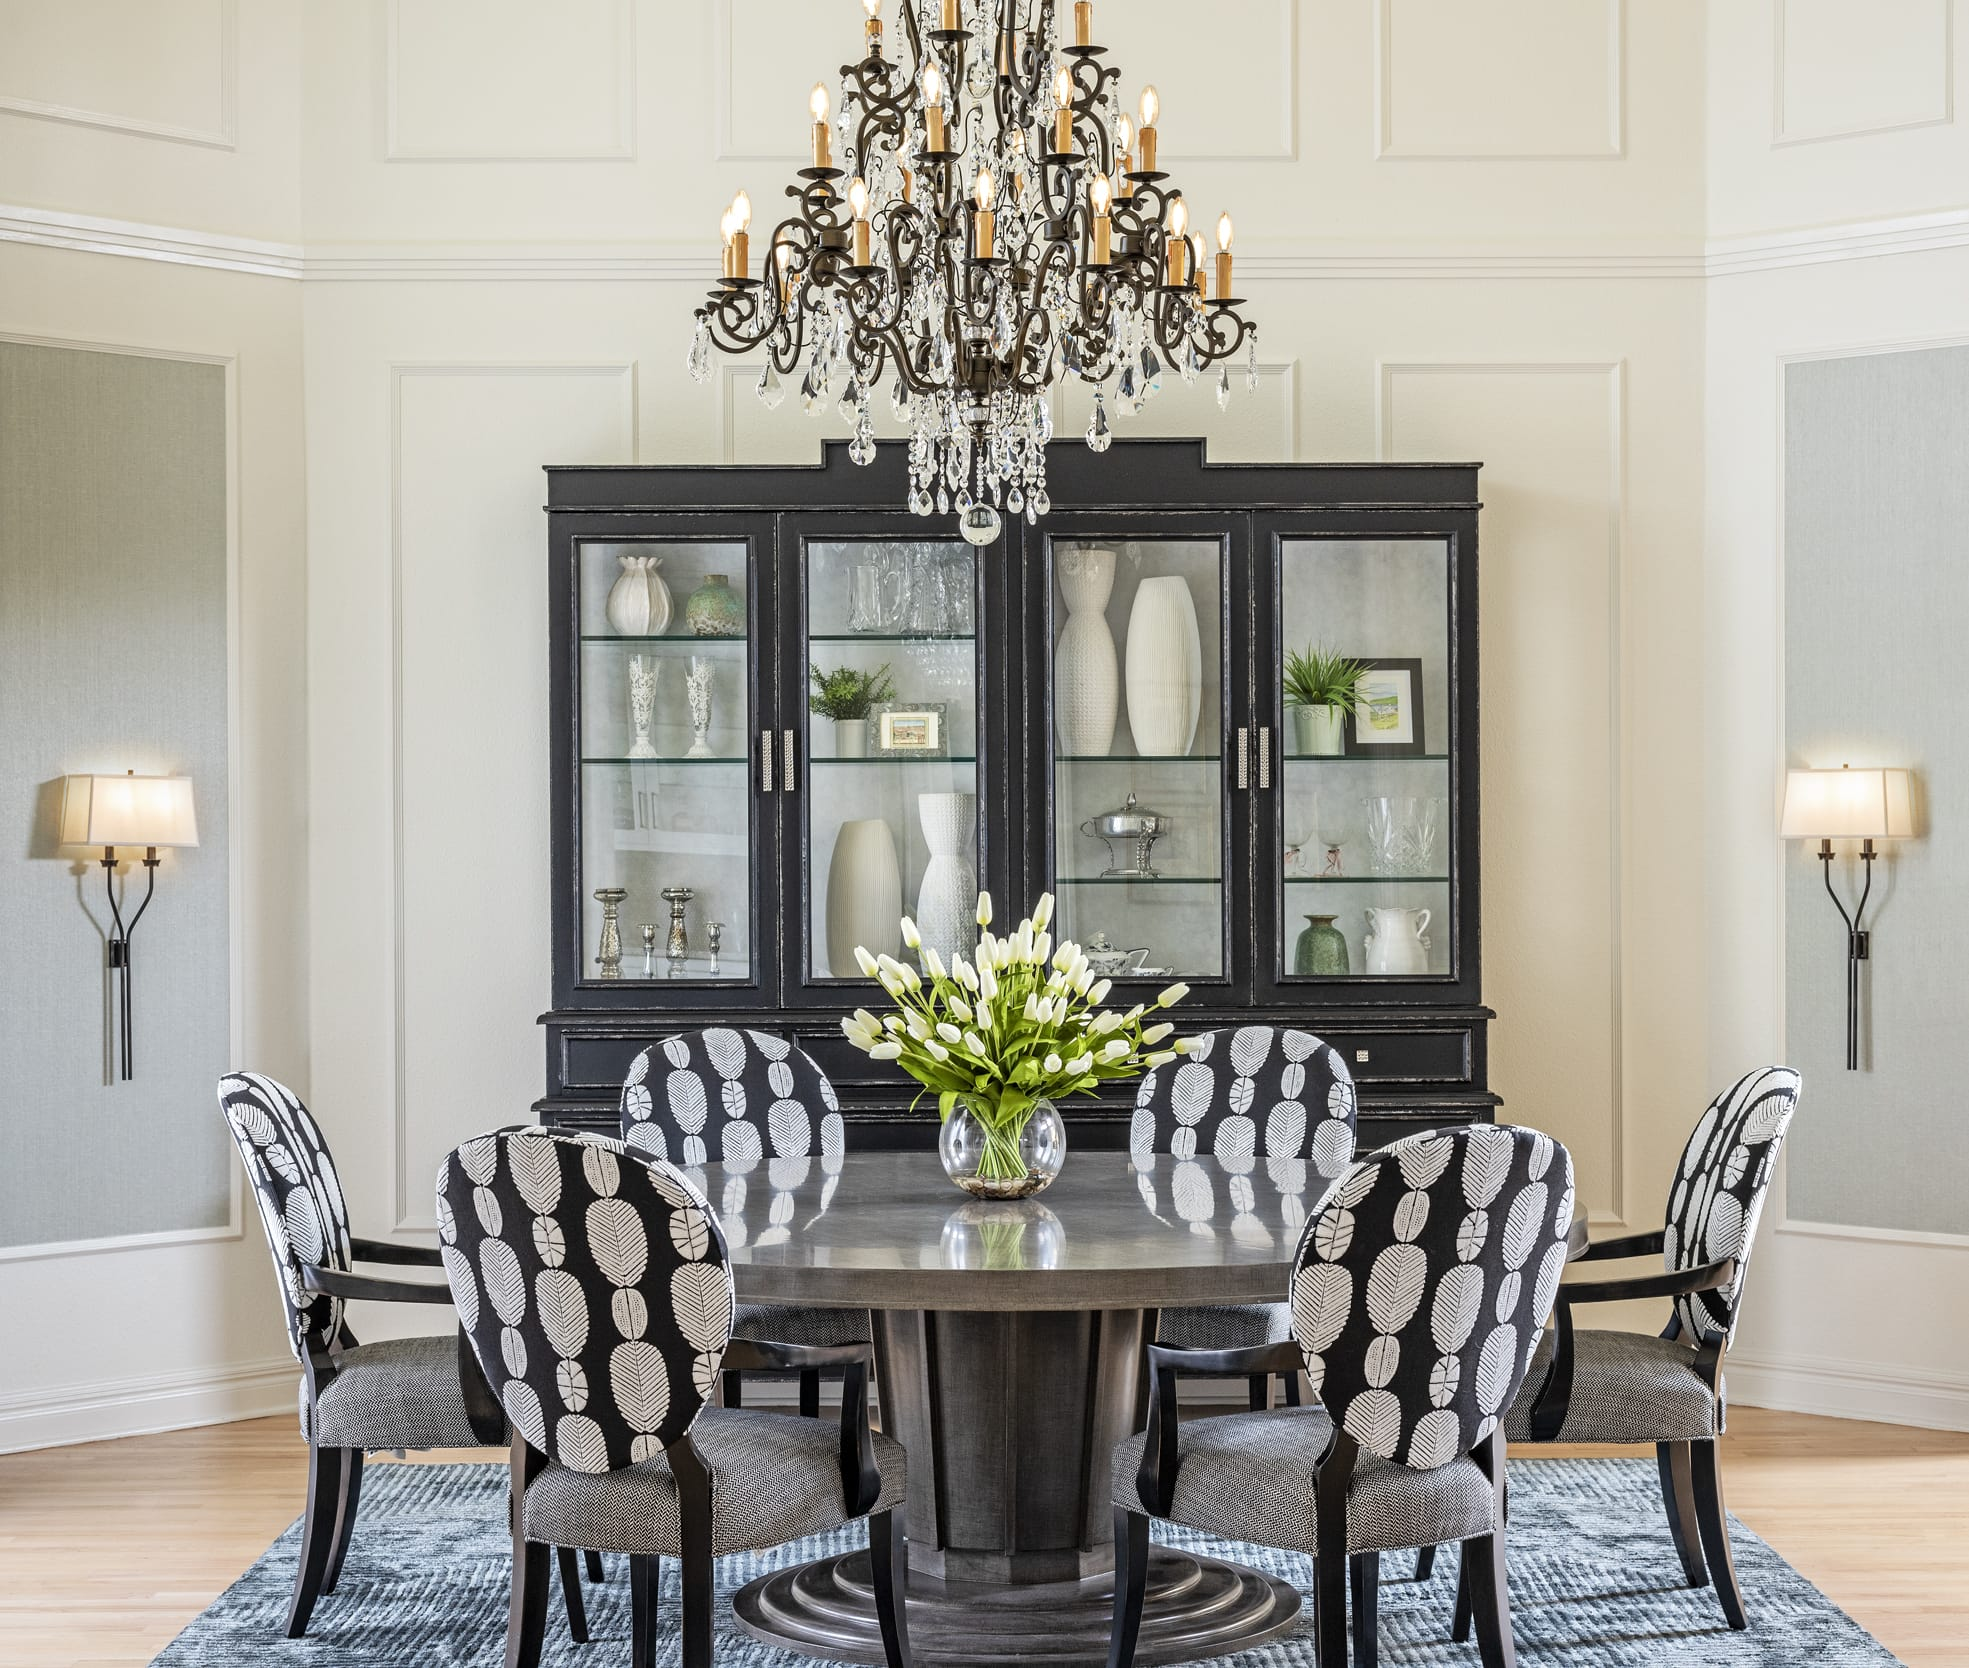 Dinning Table Black Feather Pattern Upholstered Chairs Black Chandelier